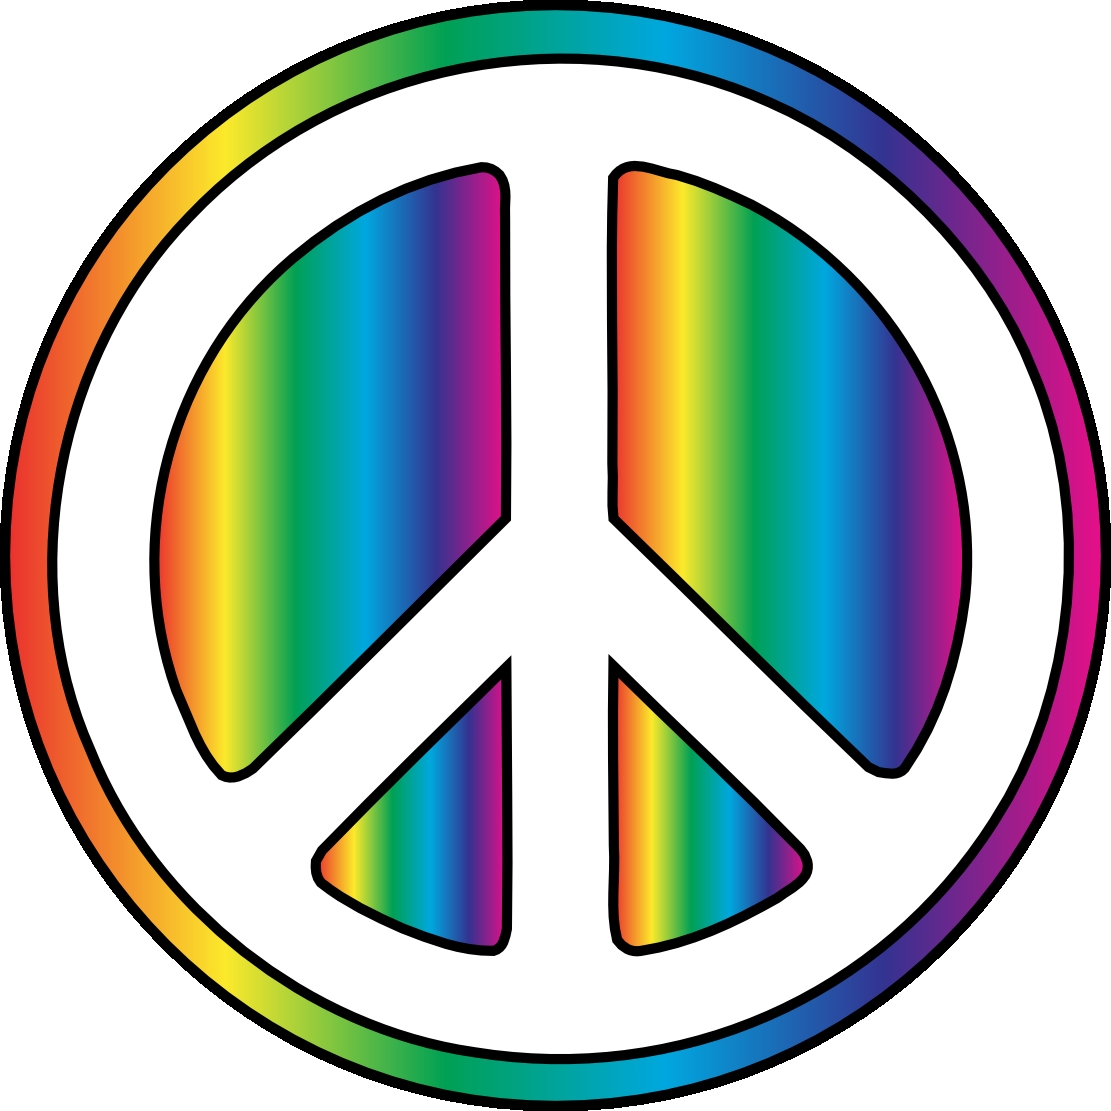 Hippie clipart. At getdrawings com free